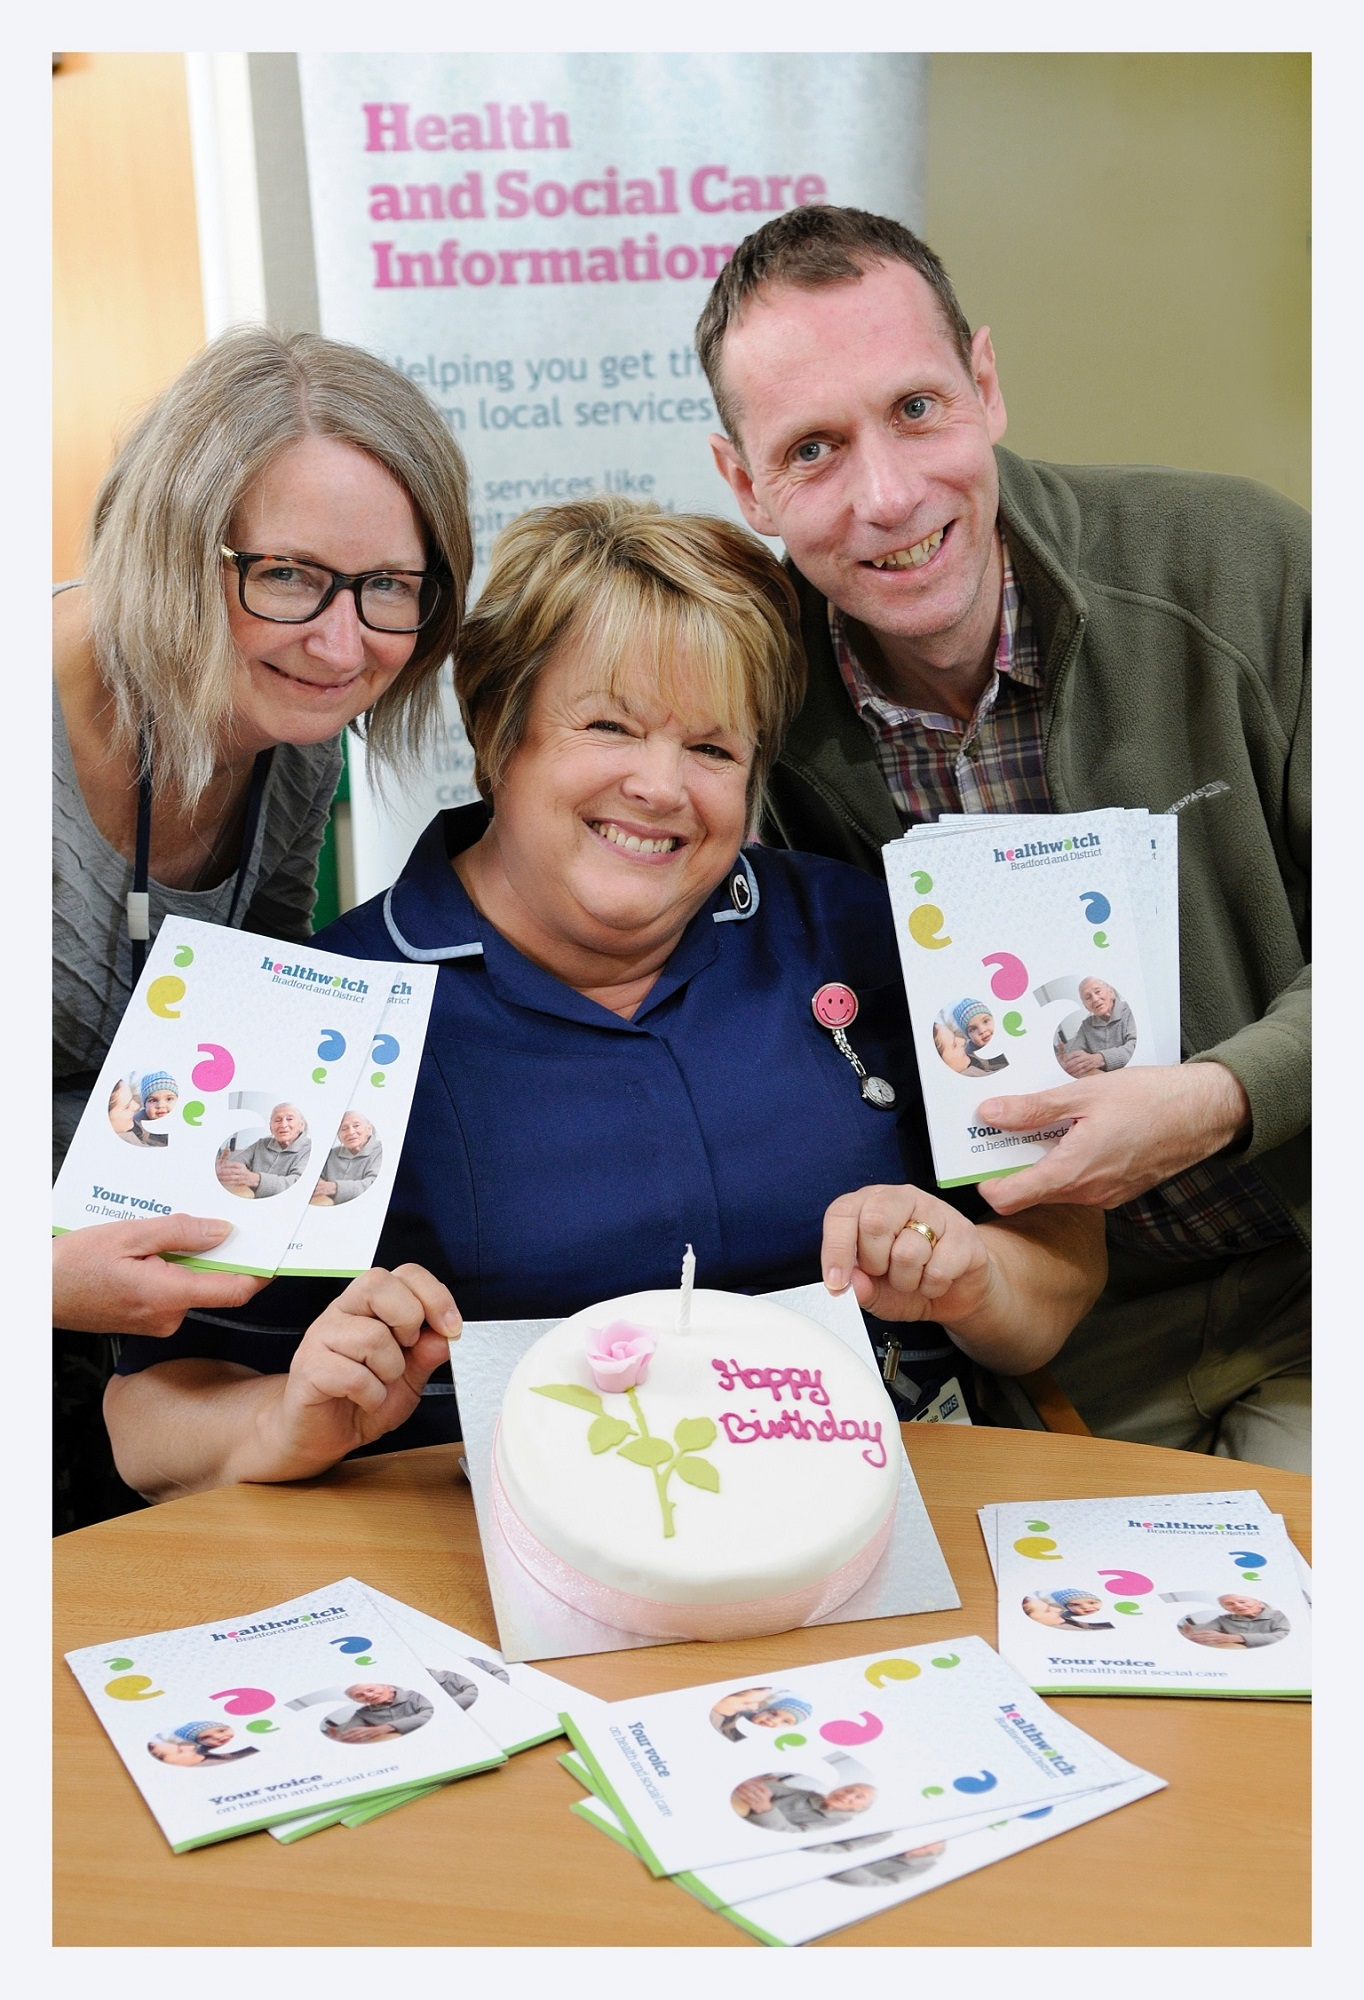 Celebrating the Healthwatch birthday are, from left, Karen Dunwoodie, Brenda Emsley and Healthwatch Bradford and District information officer Daniel Park